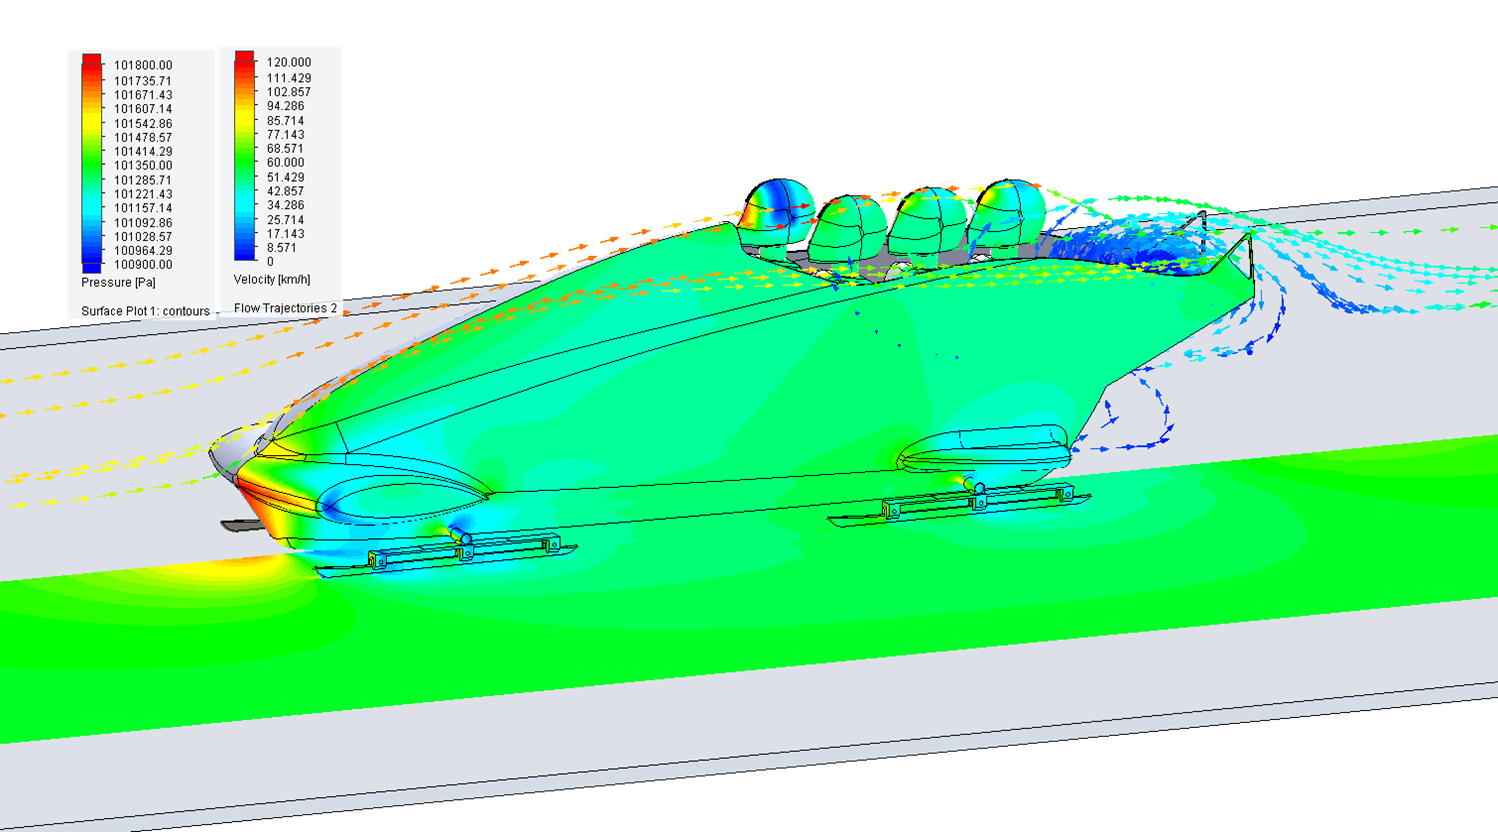 Can CFD tools explain the aerodynamics of a medal-winning bobsled?